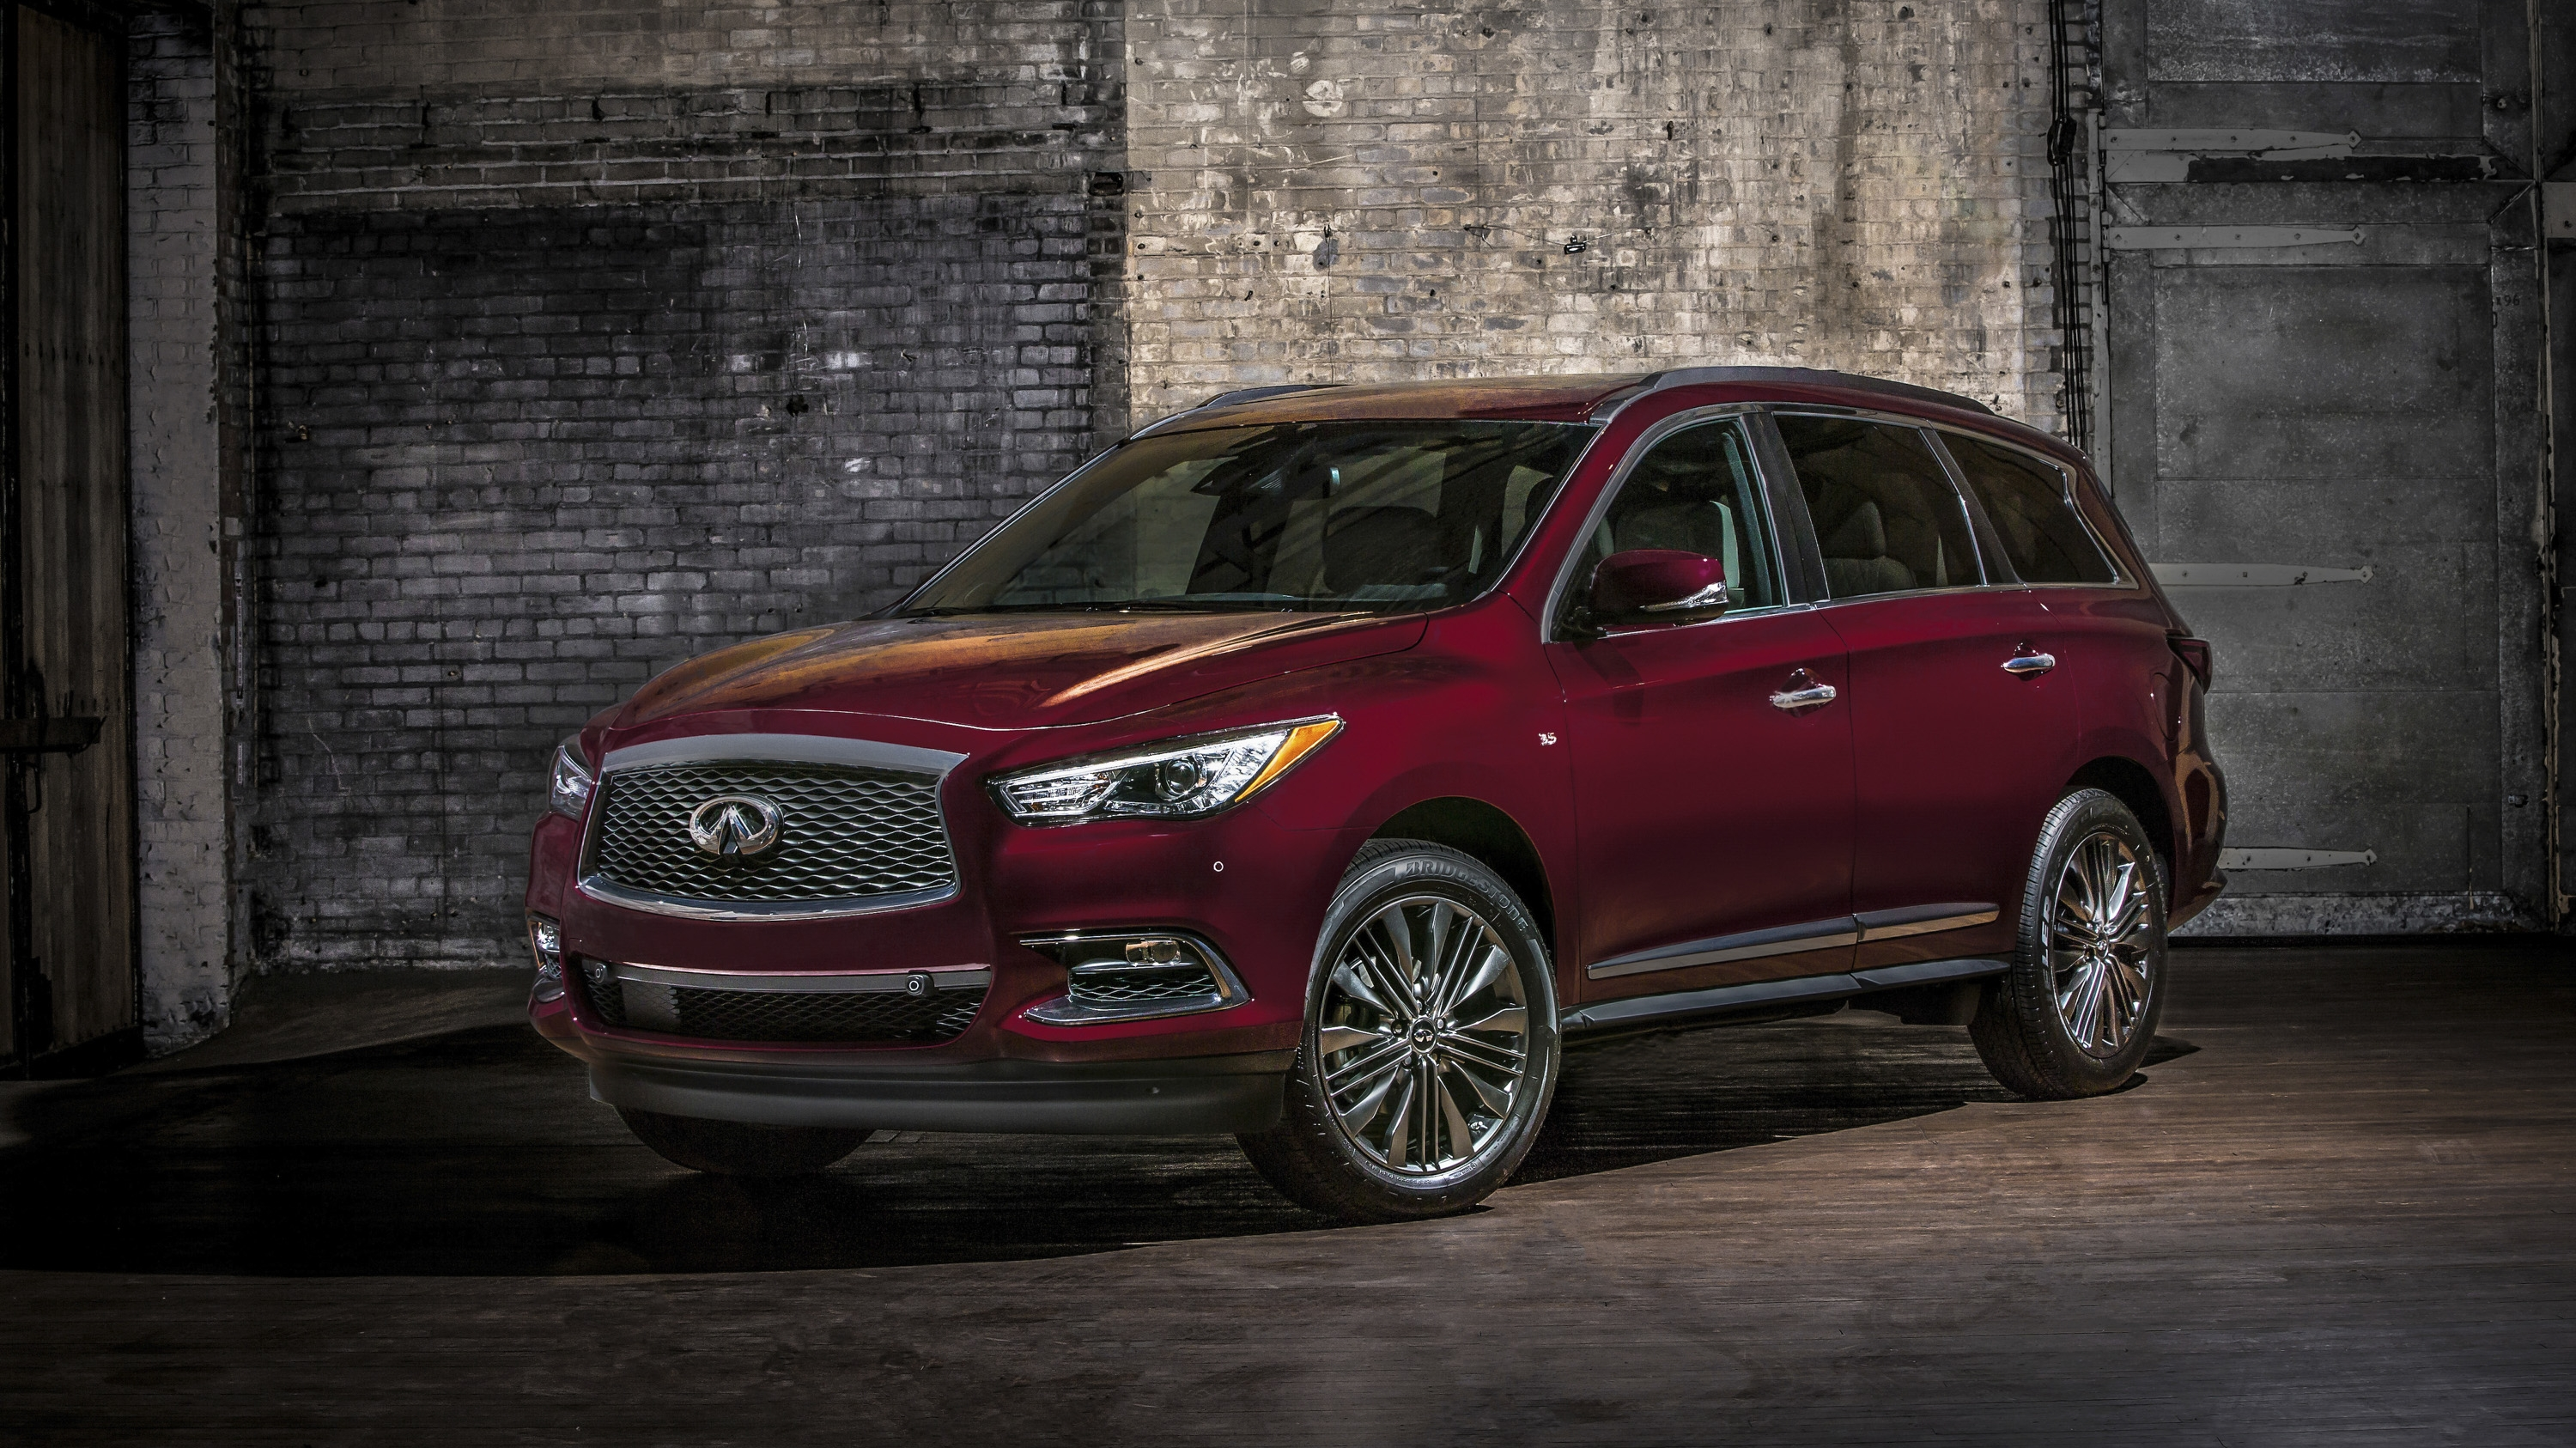 2019 Luxury Car Of The Year: 2019 Infiniti QX60 LIMITED